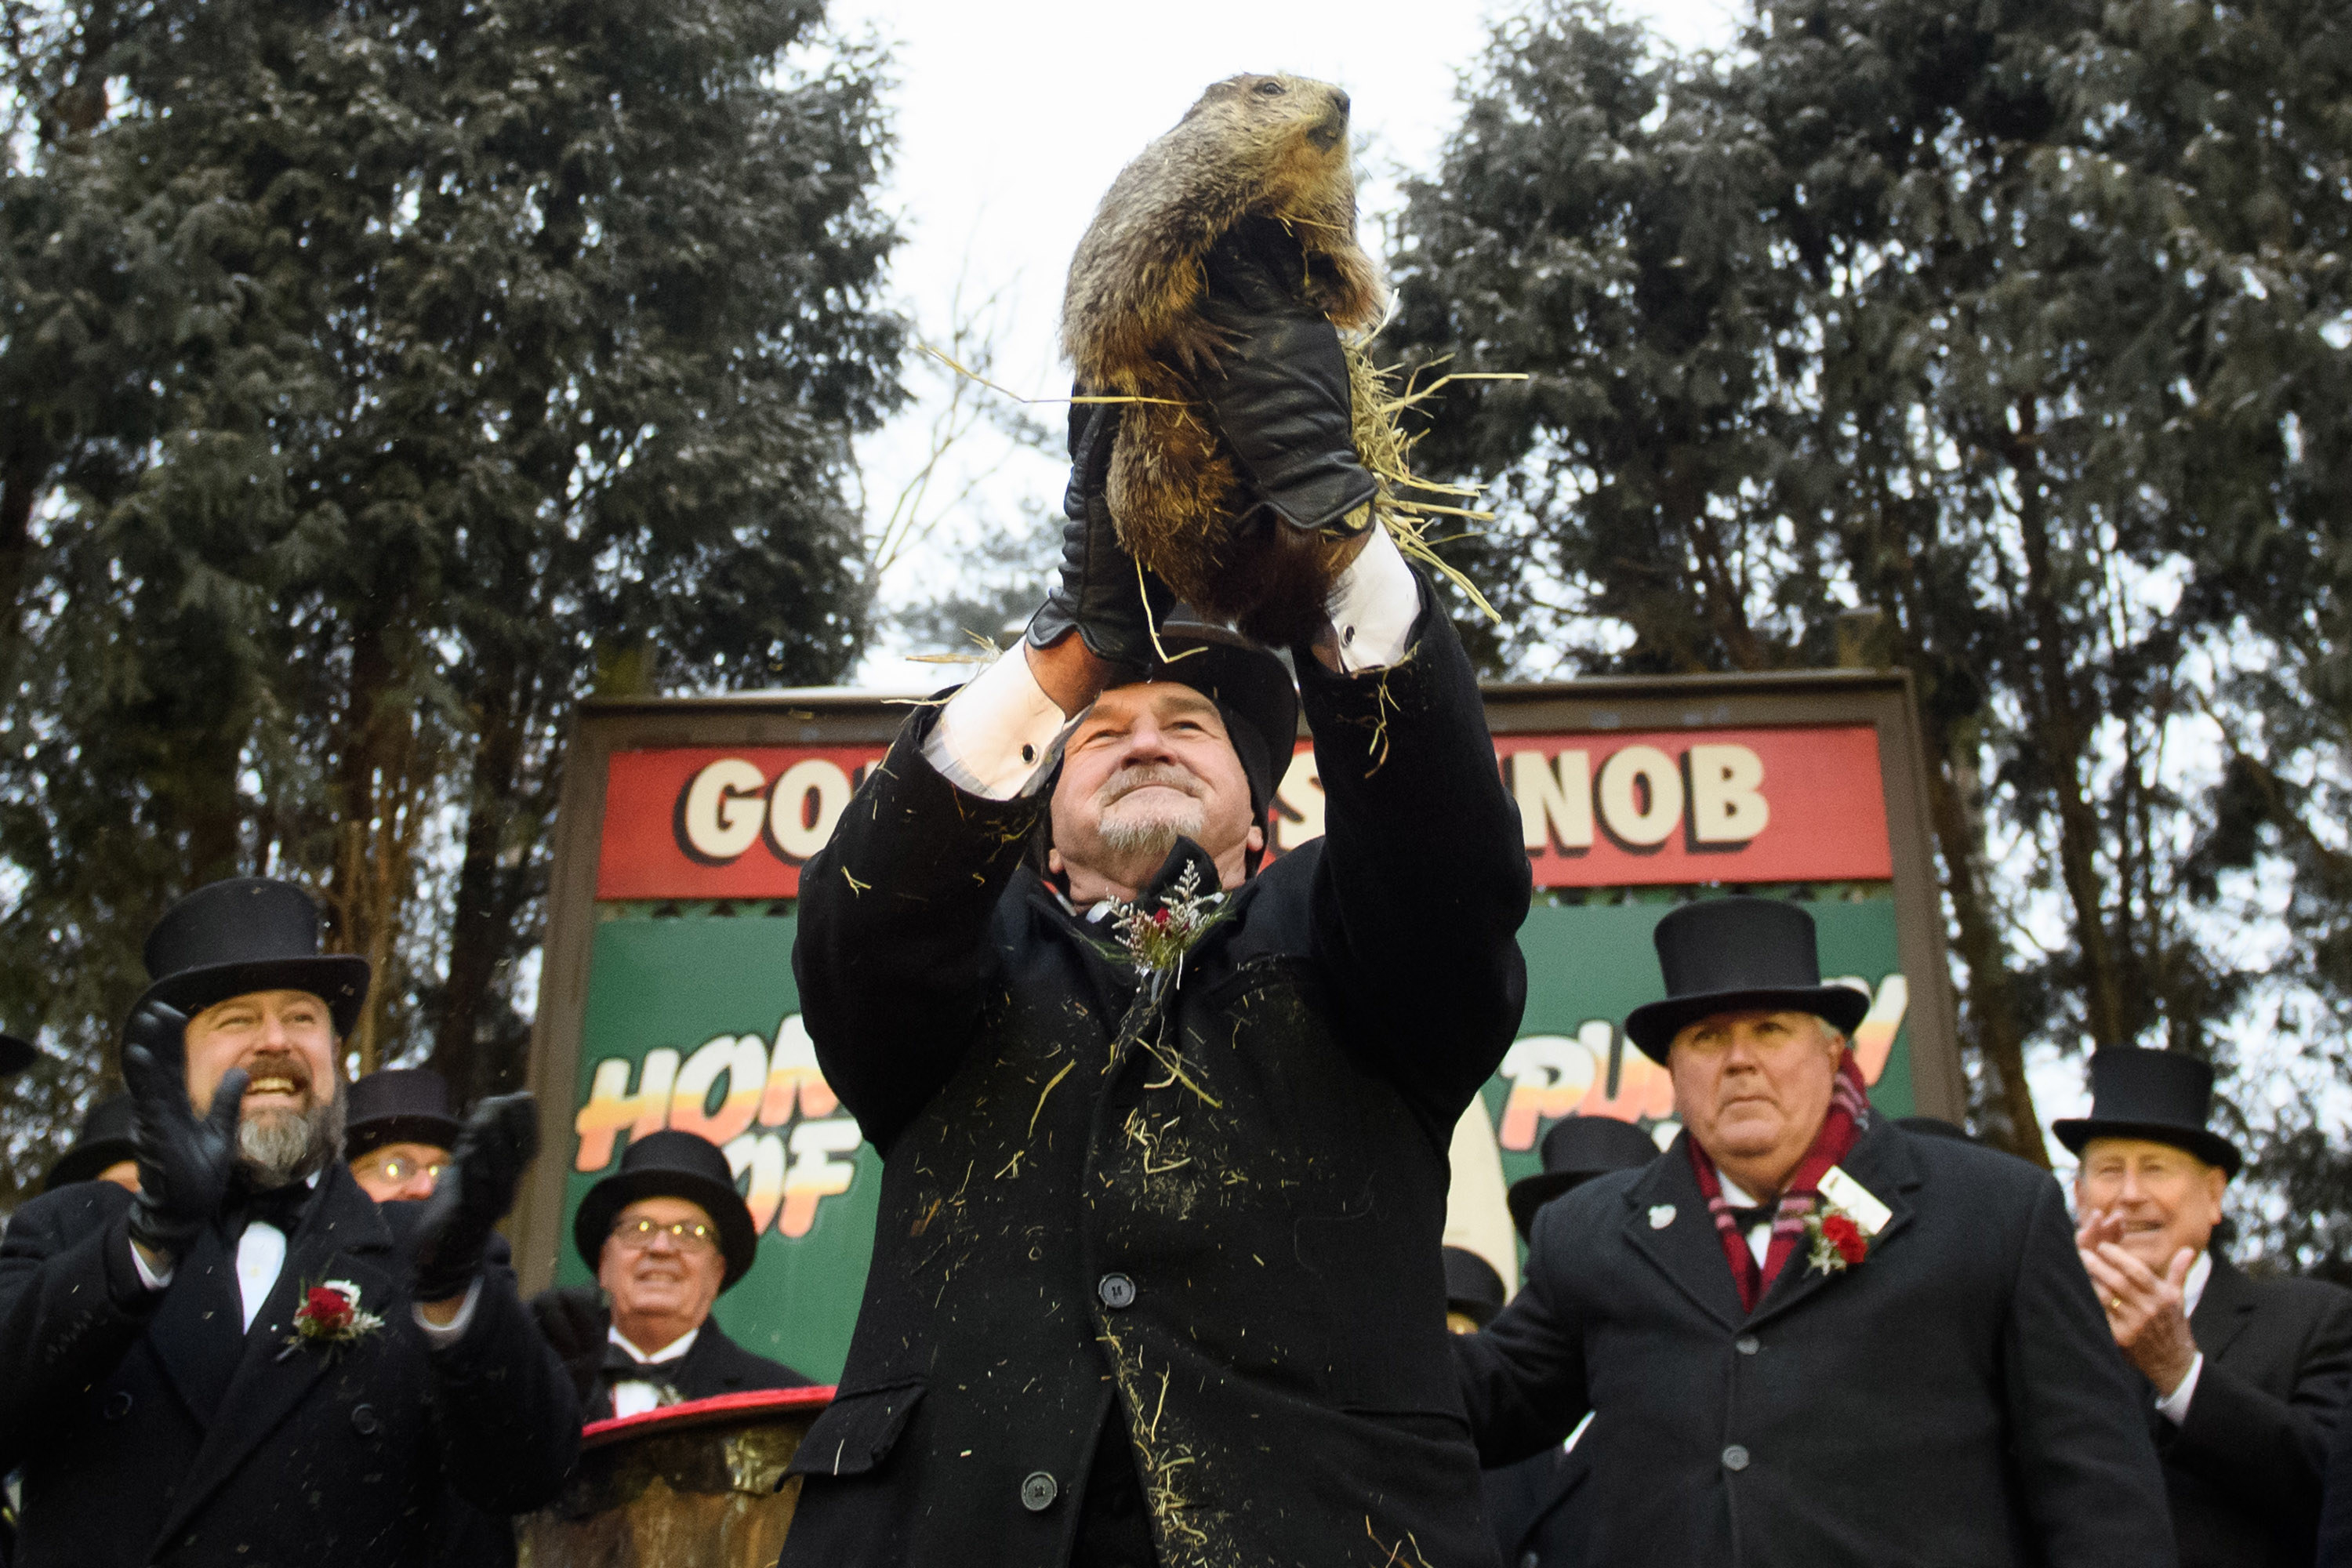 old man holding up a groundhog while men in top hats cheer in the background